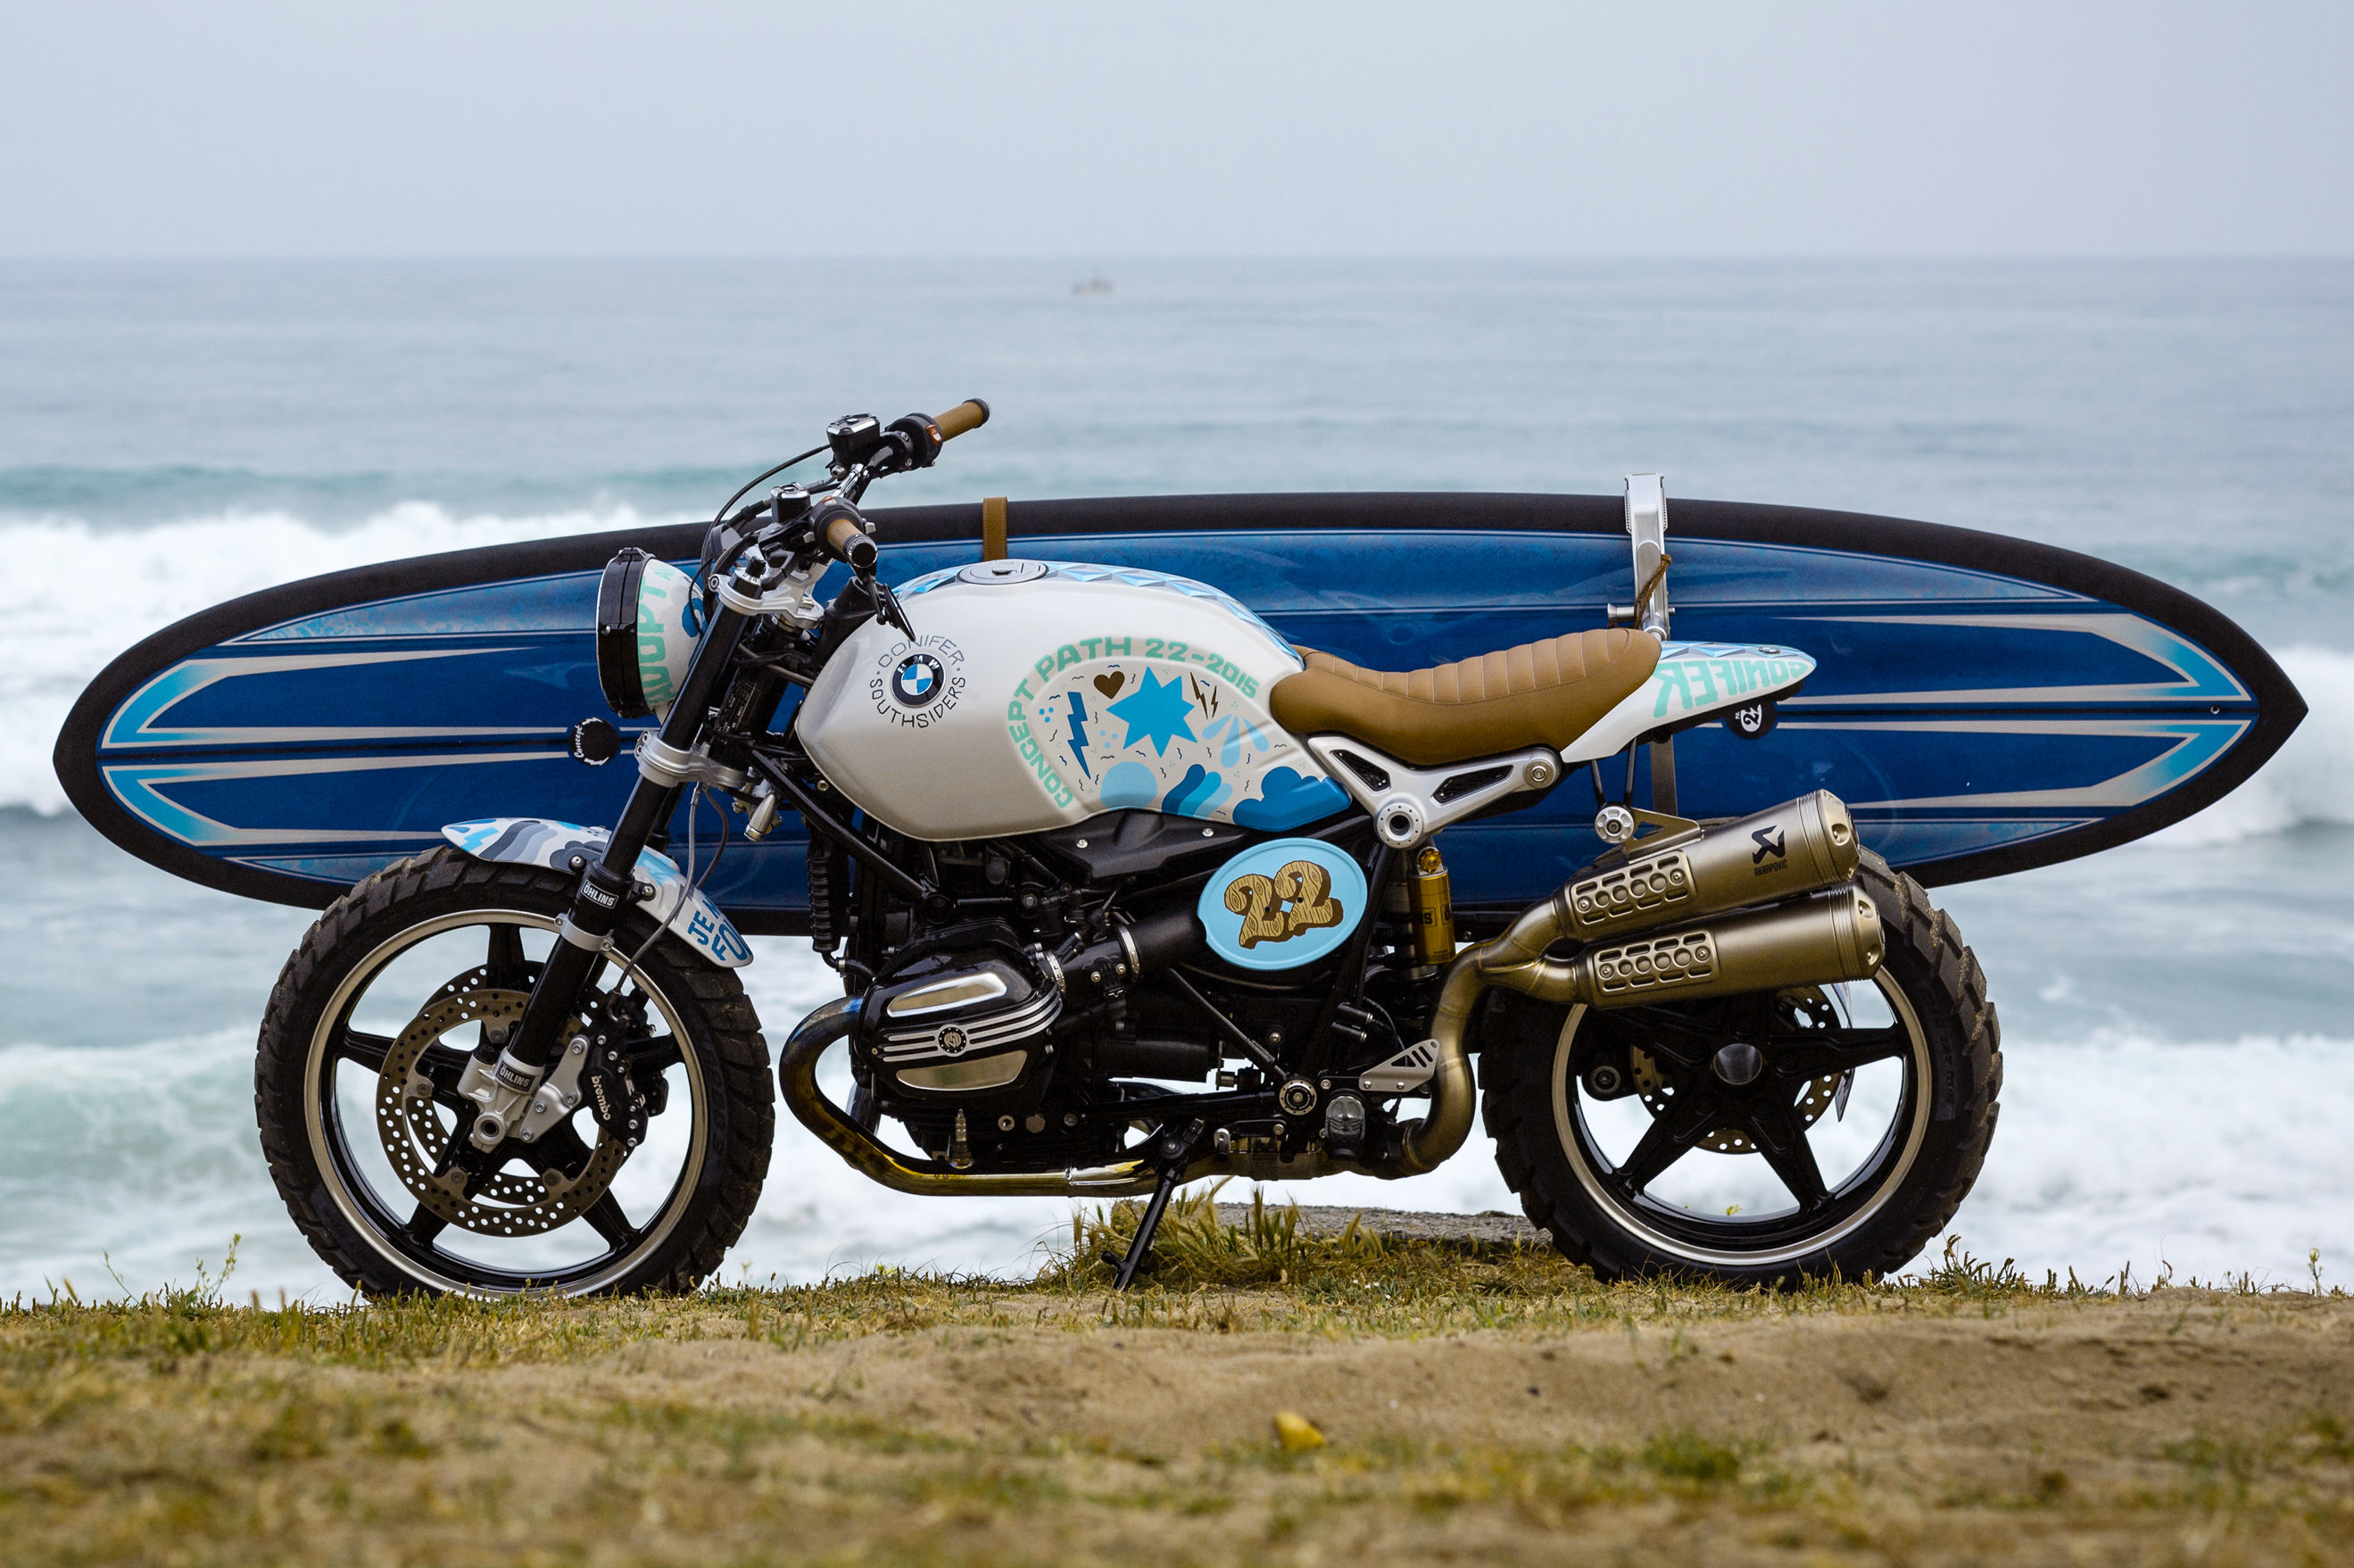 The R nineT Scrambler will be part of BMW's 2016 line-up